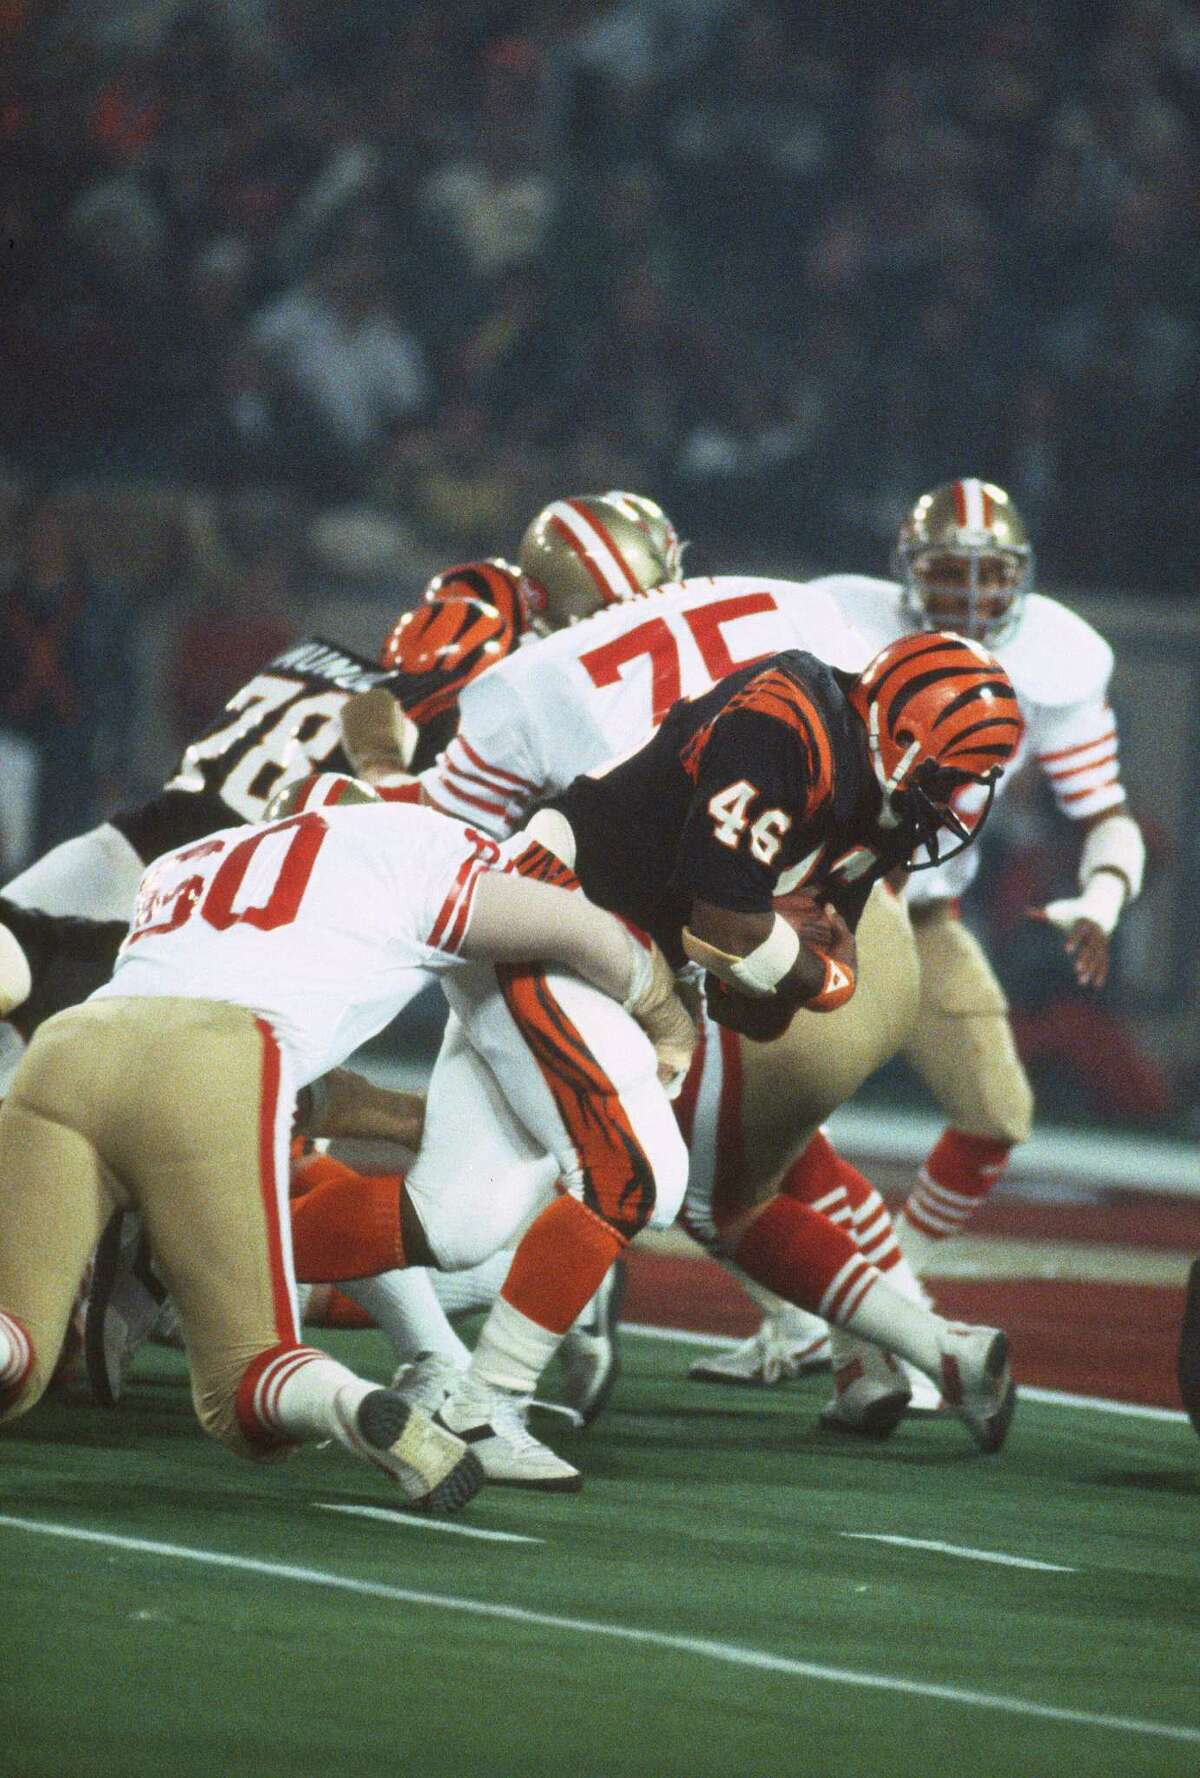 PONTIAC, MI - JANUARY 24: Pete Johnson #46 of the Cincinnati Bengals carries the ball against the San Francisco 49ers during Super Bowl XVI on January 24, 1982 at the Silverdome in Pontiac, Michigan. The Niners won the Super Bowl 26 -21. (Photo by Focus on Sport/Getty Images)